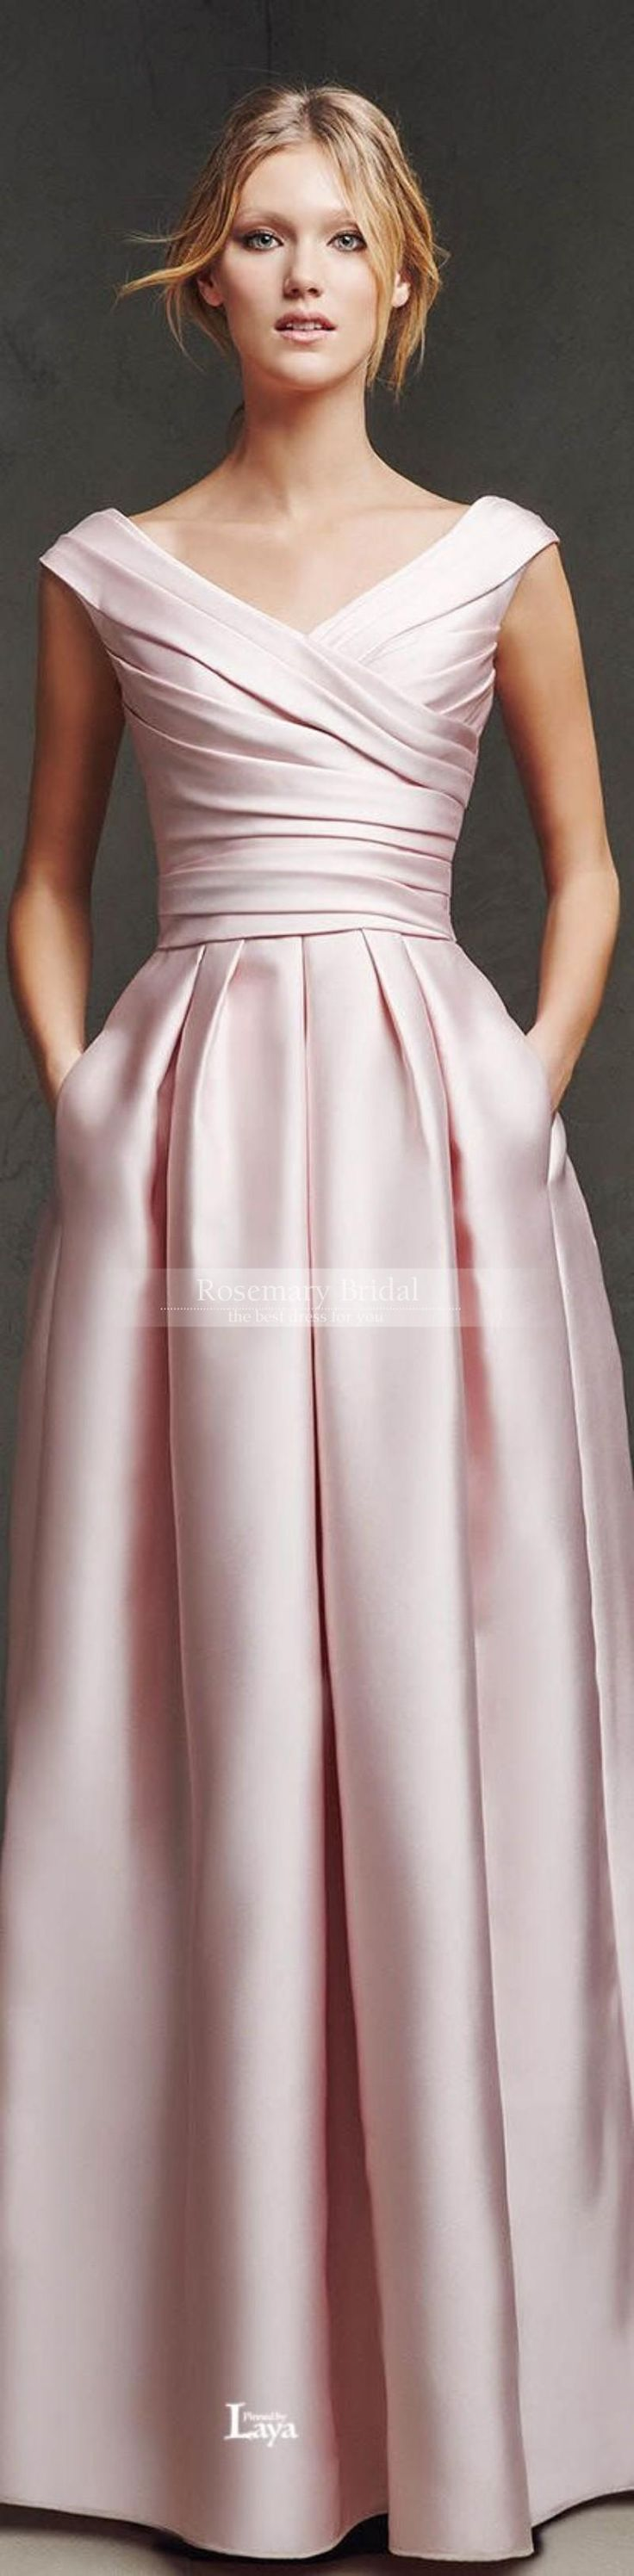 199 best Bridesmaid Dresses images on Pinterest | Wedding party ...